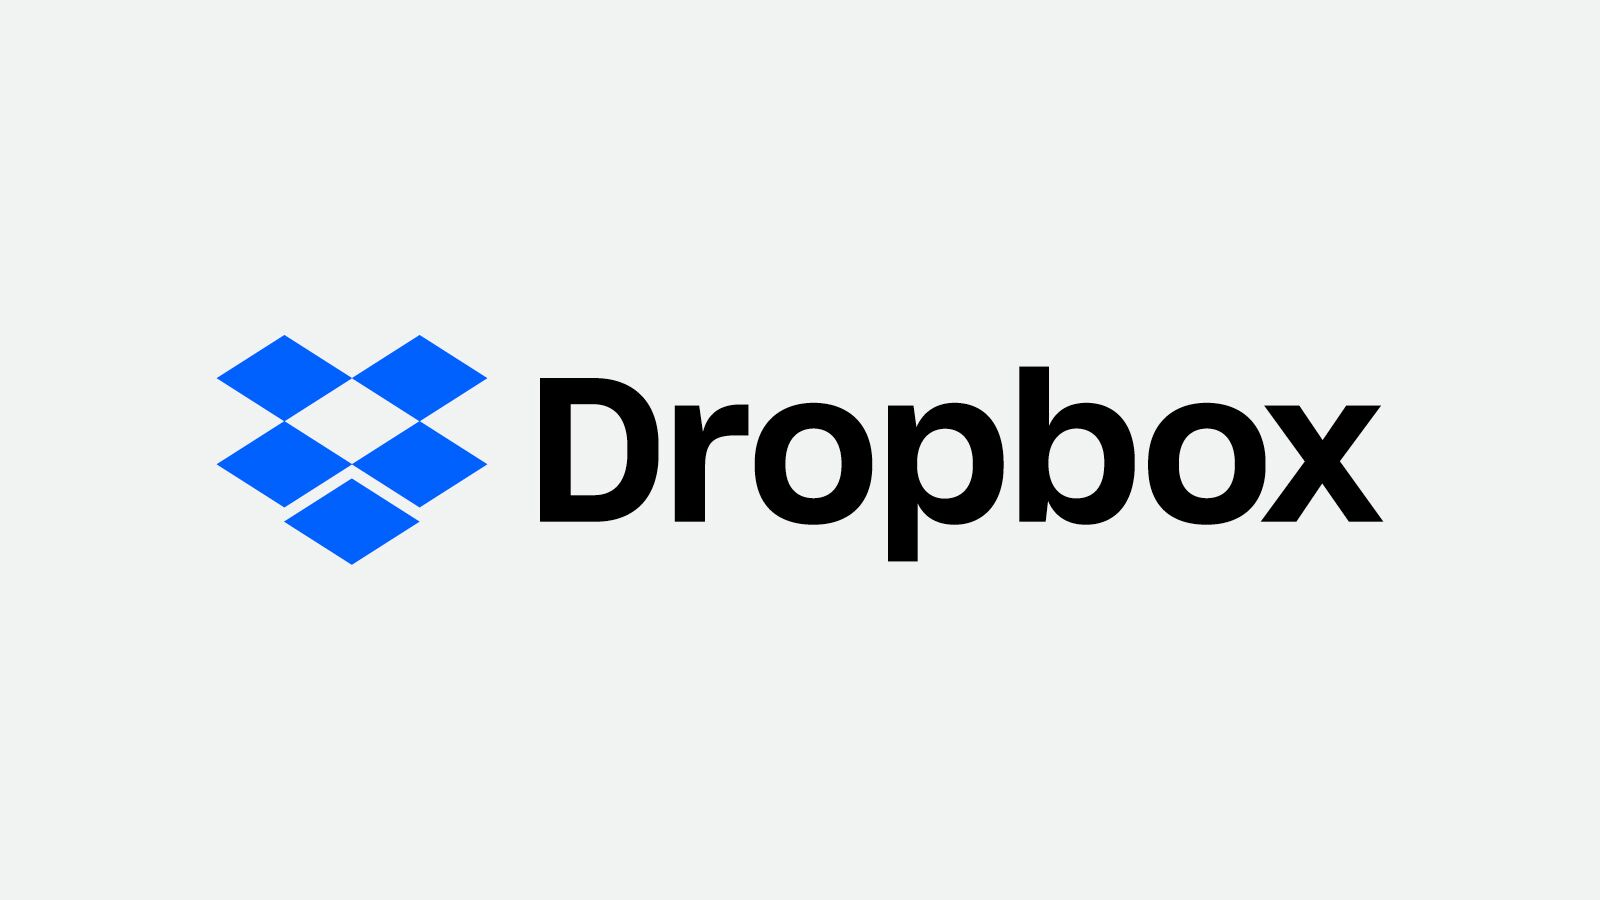 memoria do android dropbox